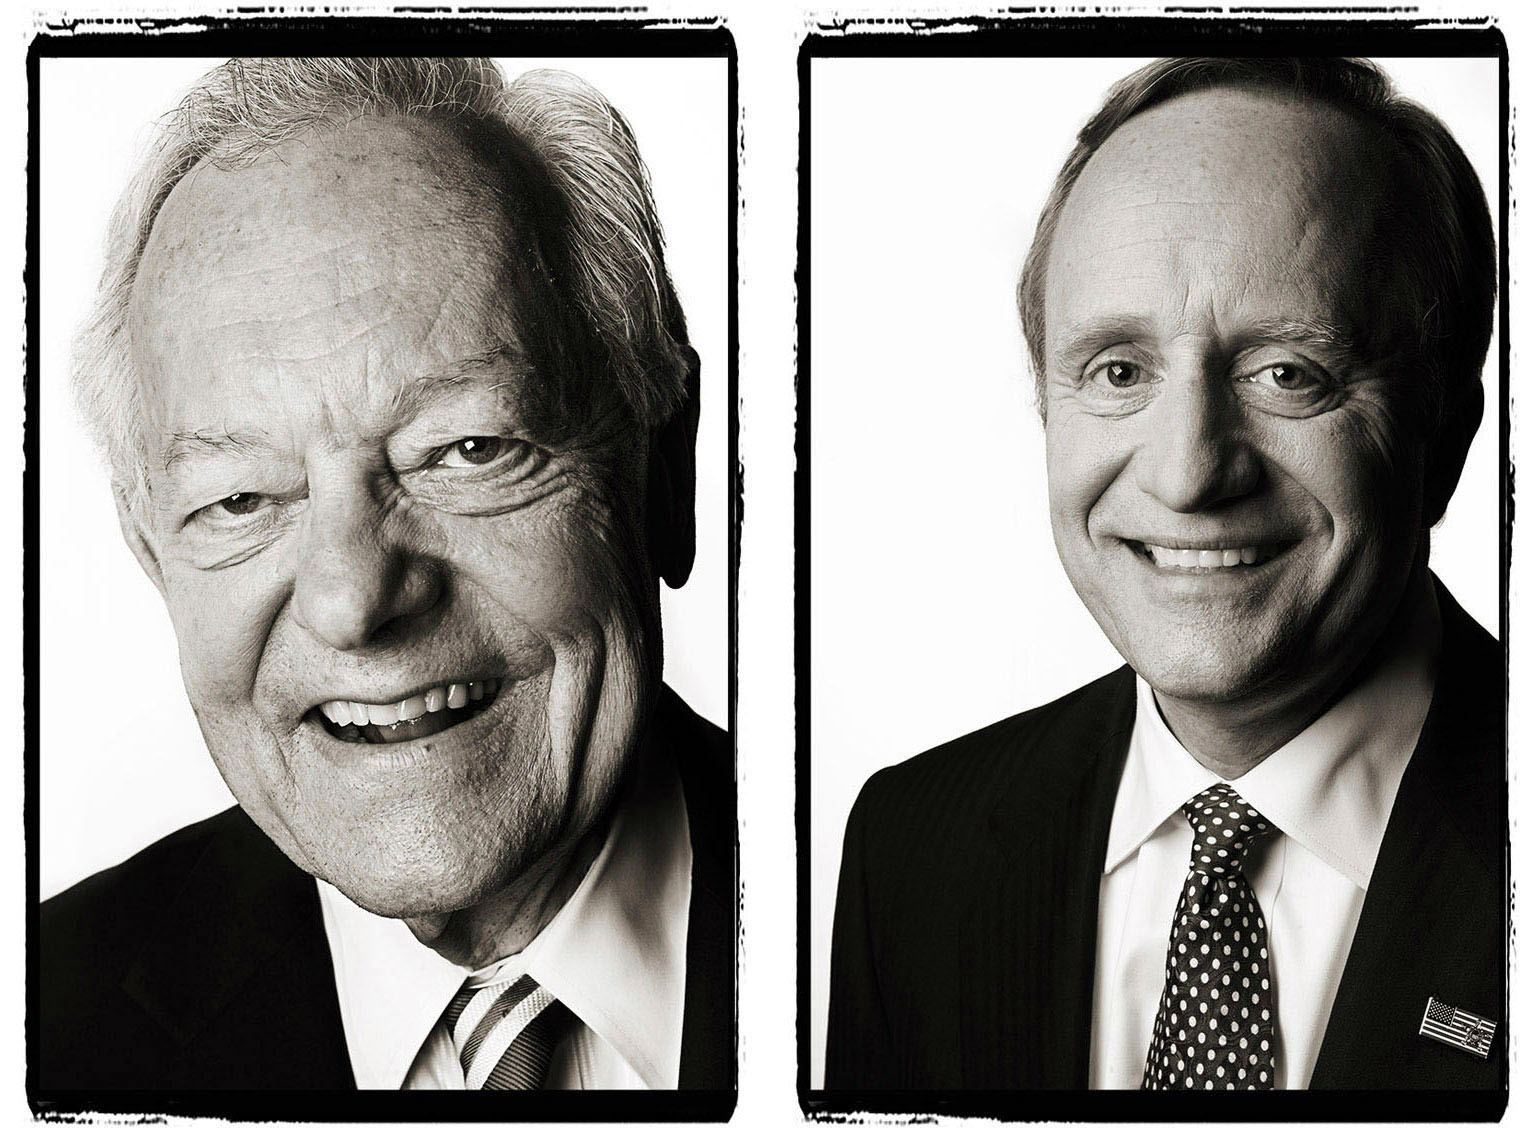 Bob Schieffer and Paul Begala | District of Columbia Photographer Aaron Clamage